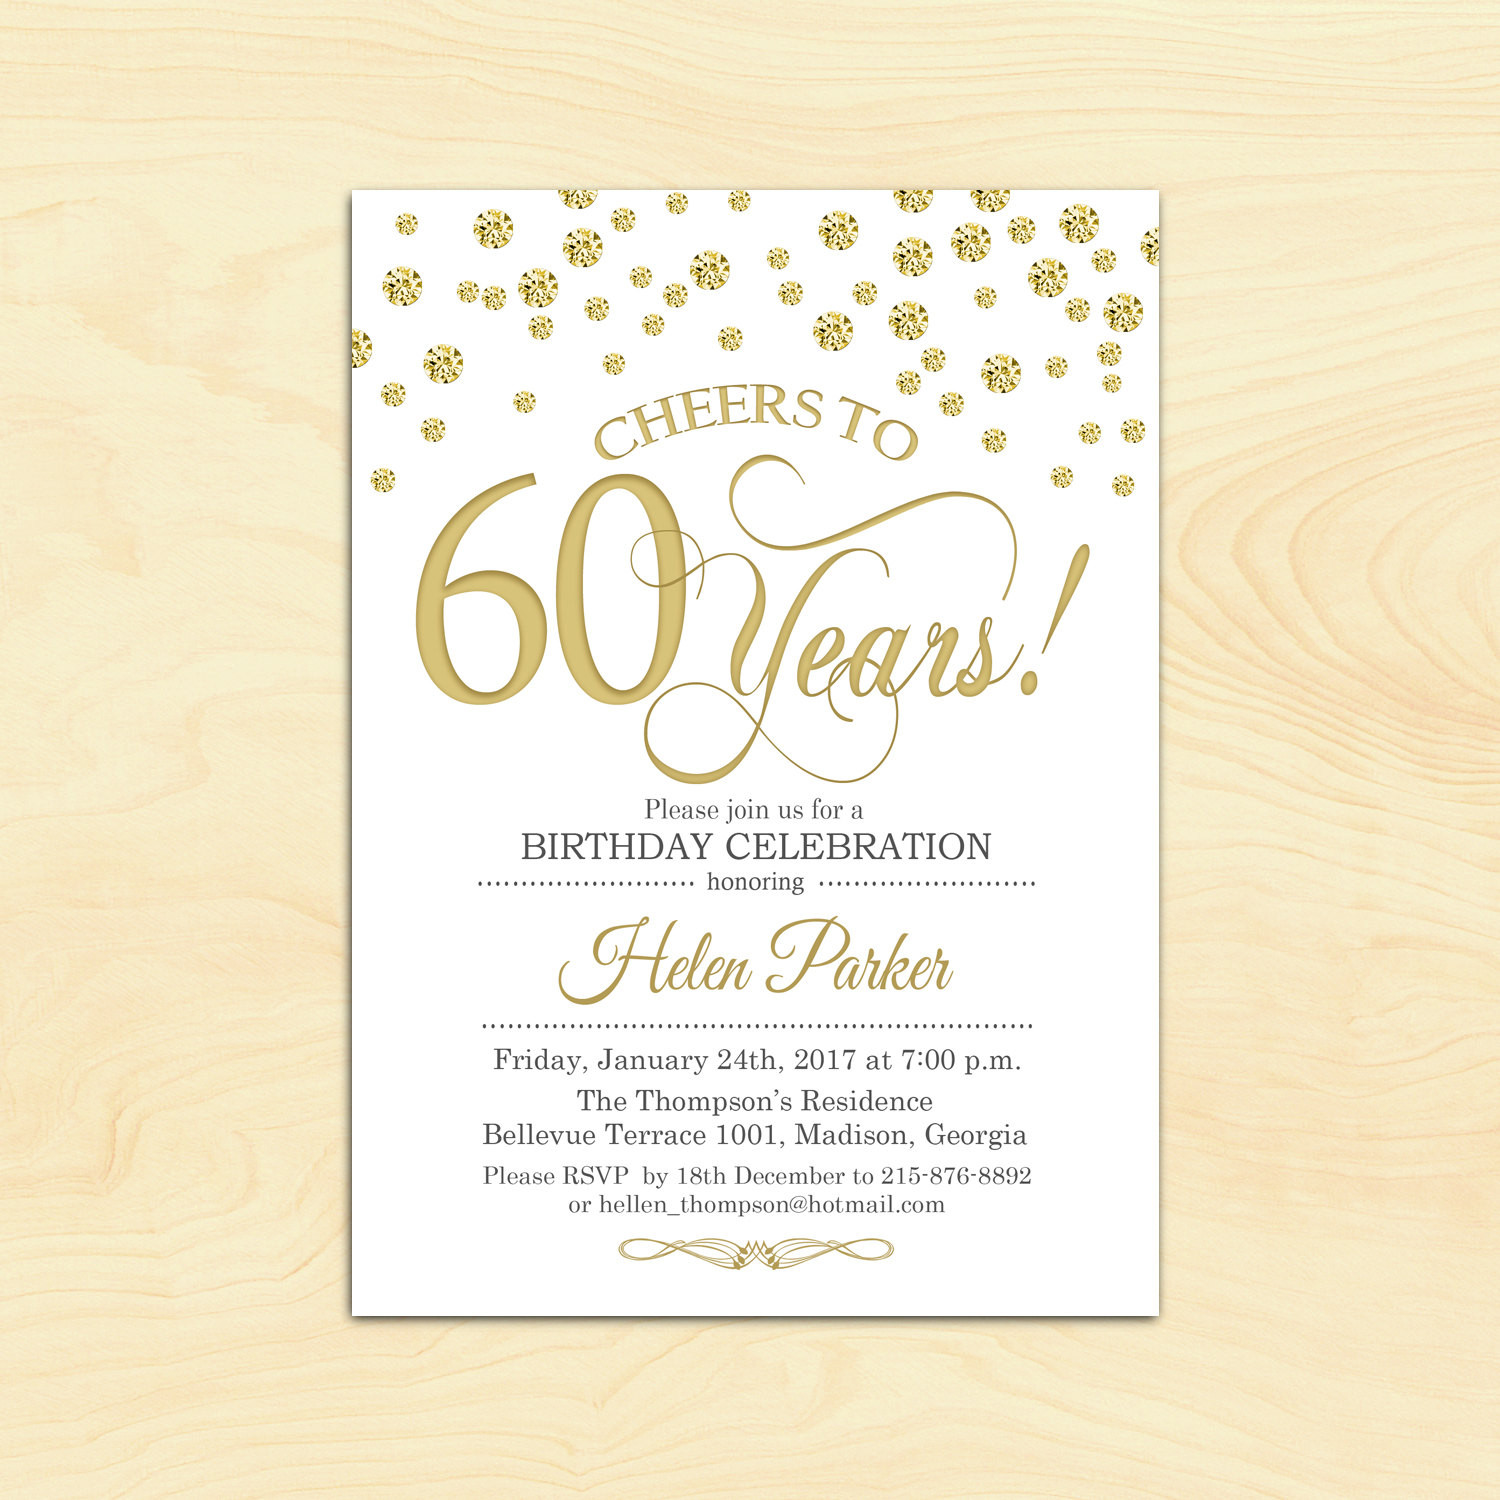 Best ideas about 60th Birthday Invitations . Save or Pin 60th Birthday Invitation Any Age Cheers to 60 Years Gold Now.